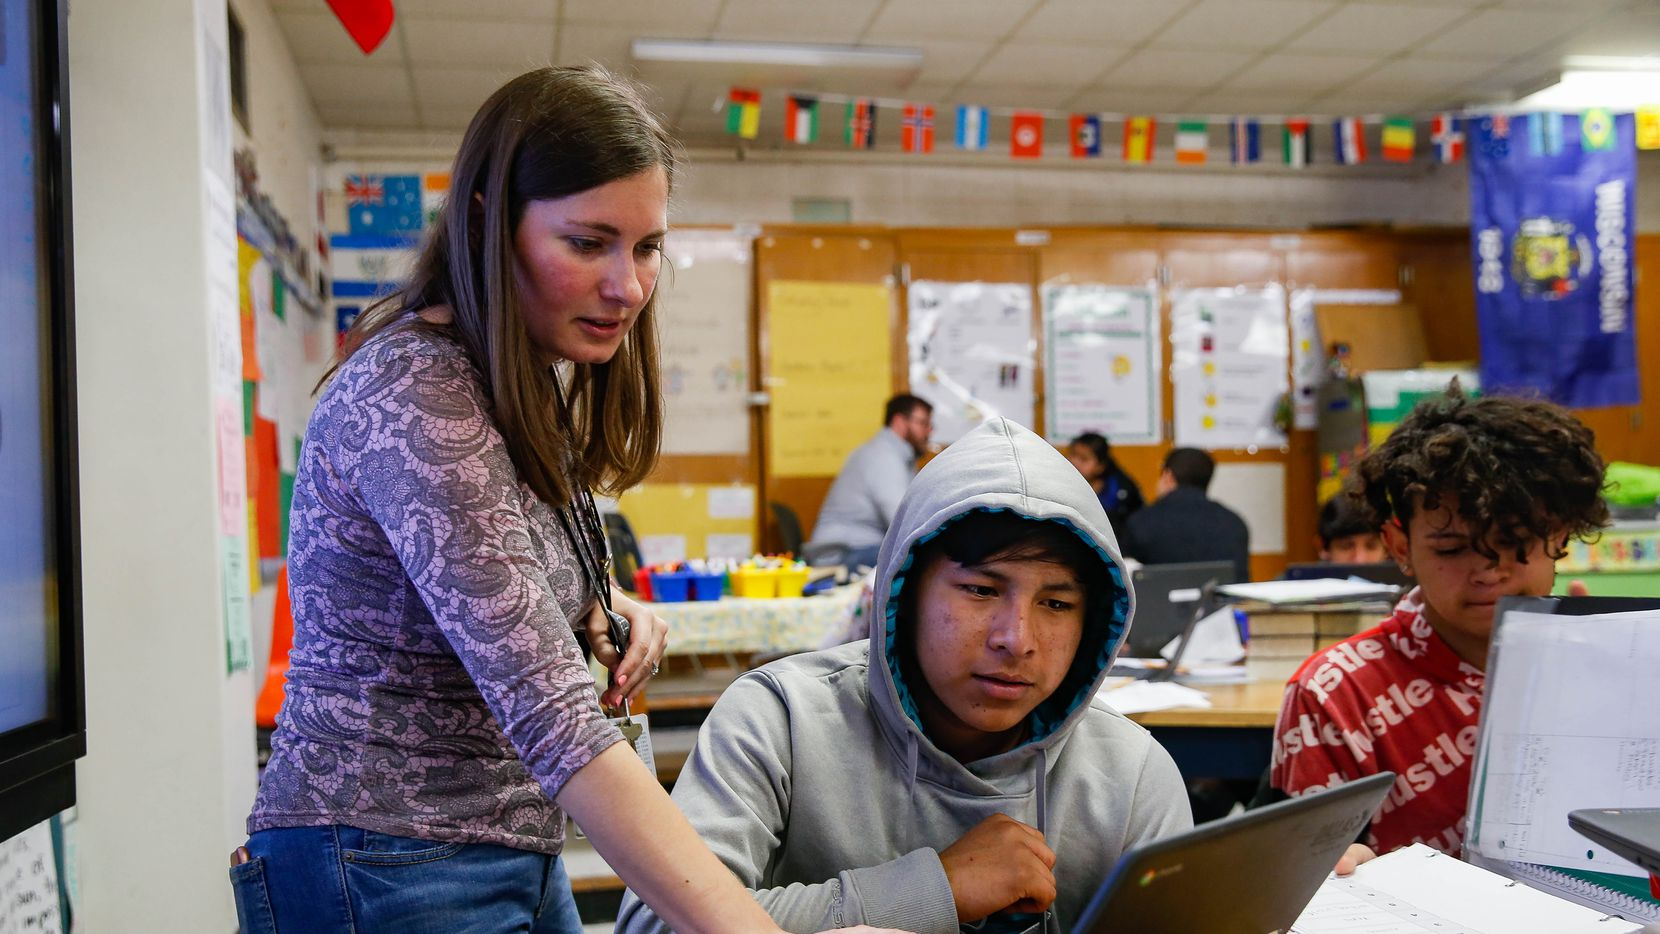 Teacher Autumn Slosser helps freshman Maynor Caal, who is learning English as a third language, through his second language, Spanish. Maynor is one of about 30 students at Thomas Jefferson High School who speak Q'eqchi' (Kek-chee), an indigenous Mayan language, as their native language.